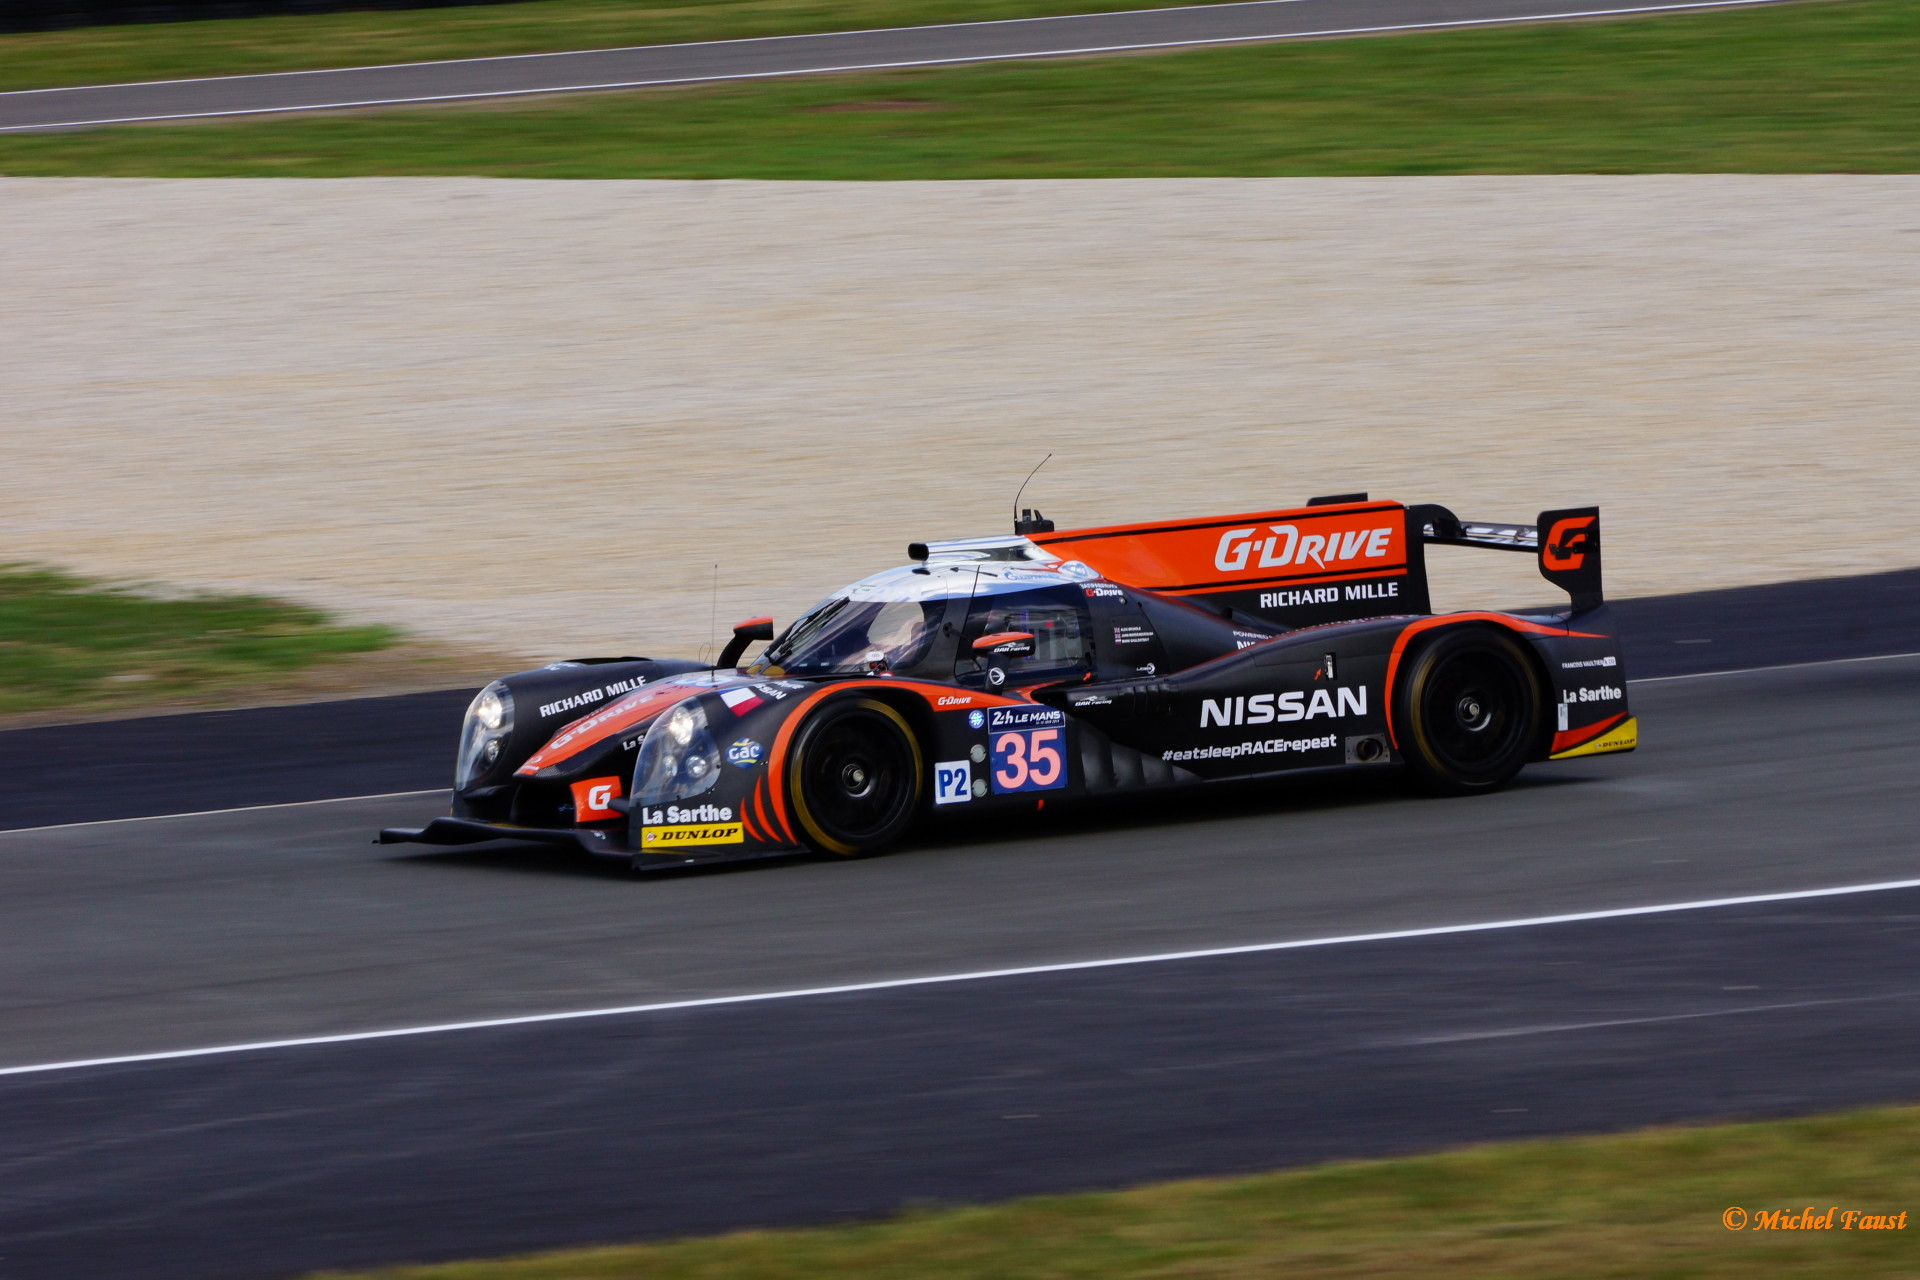 OAK Racing Ligier JS P2 Nissan - Brundle / Mardenborough / Shulzhitskiy - Le Mans 2014 Essais